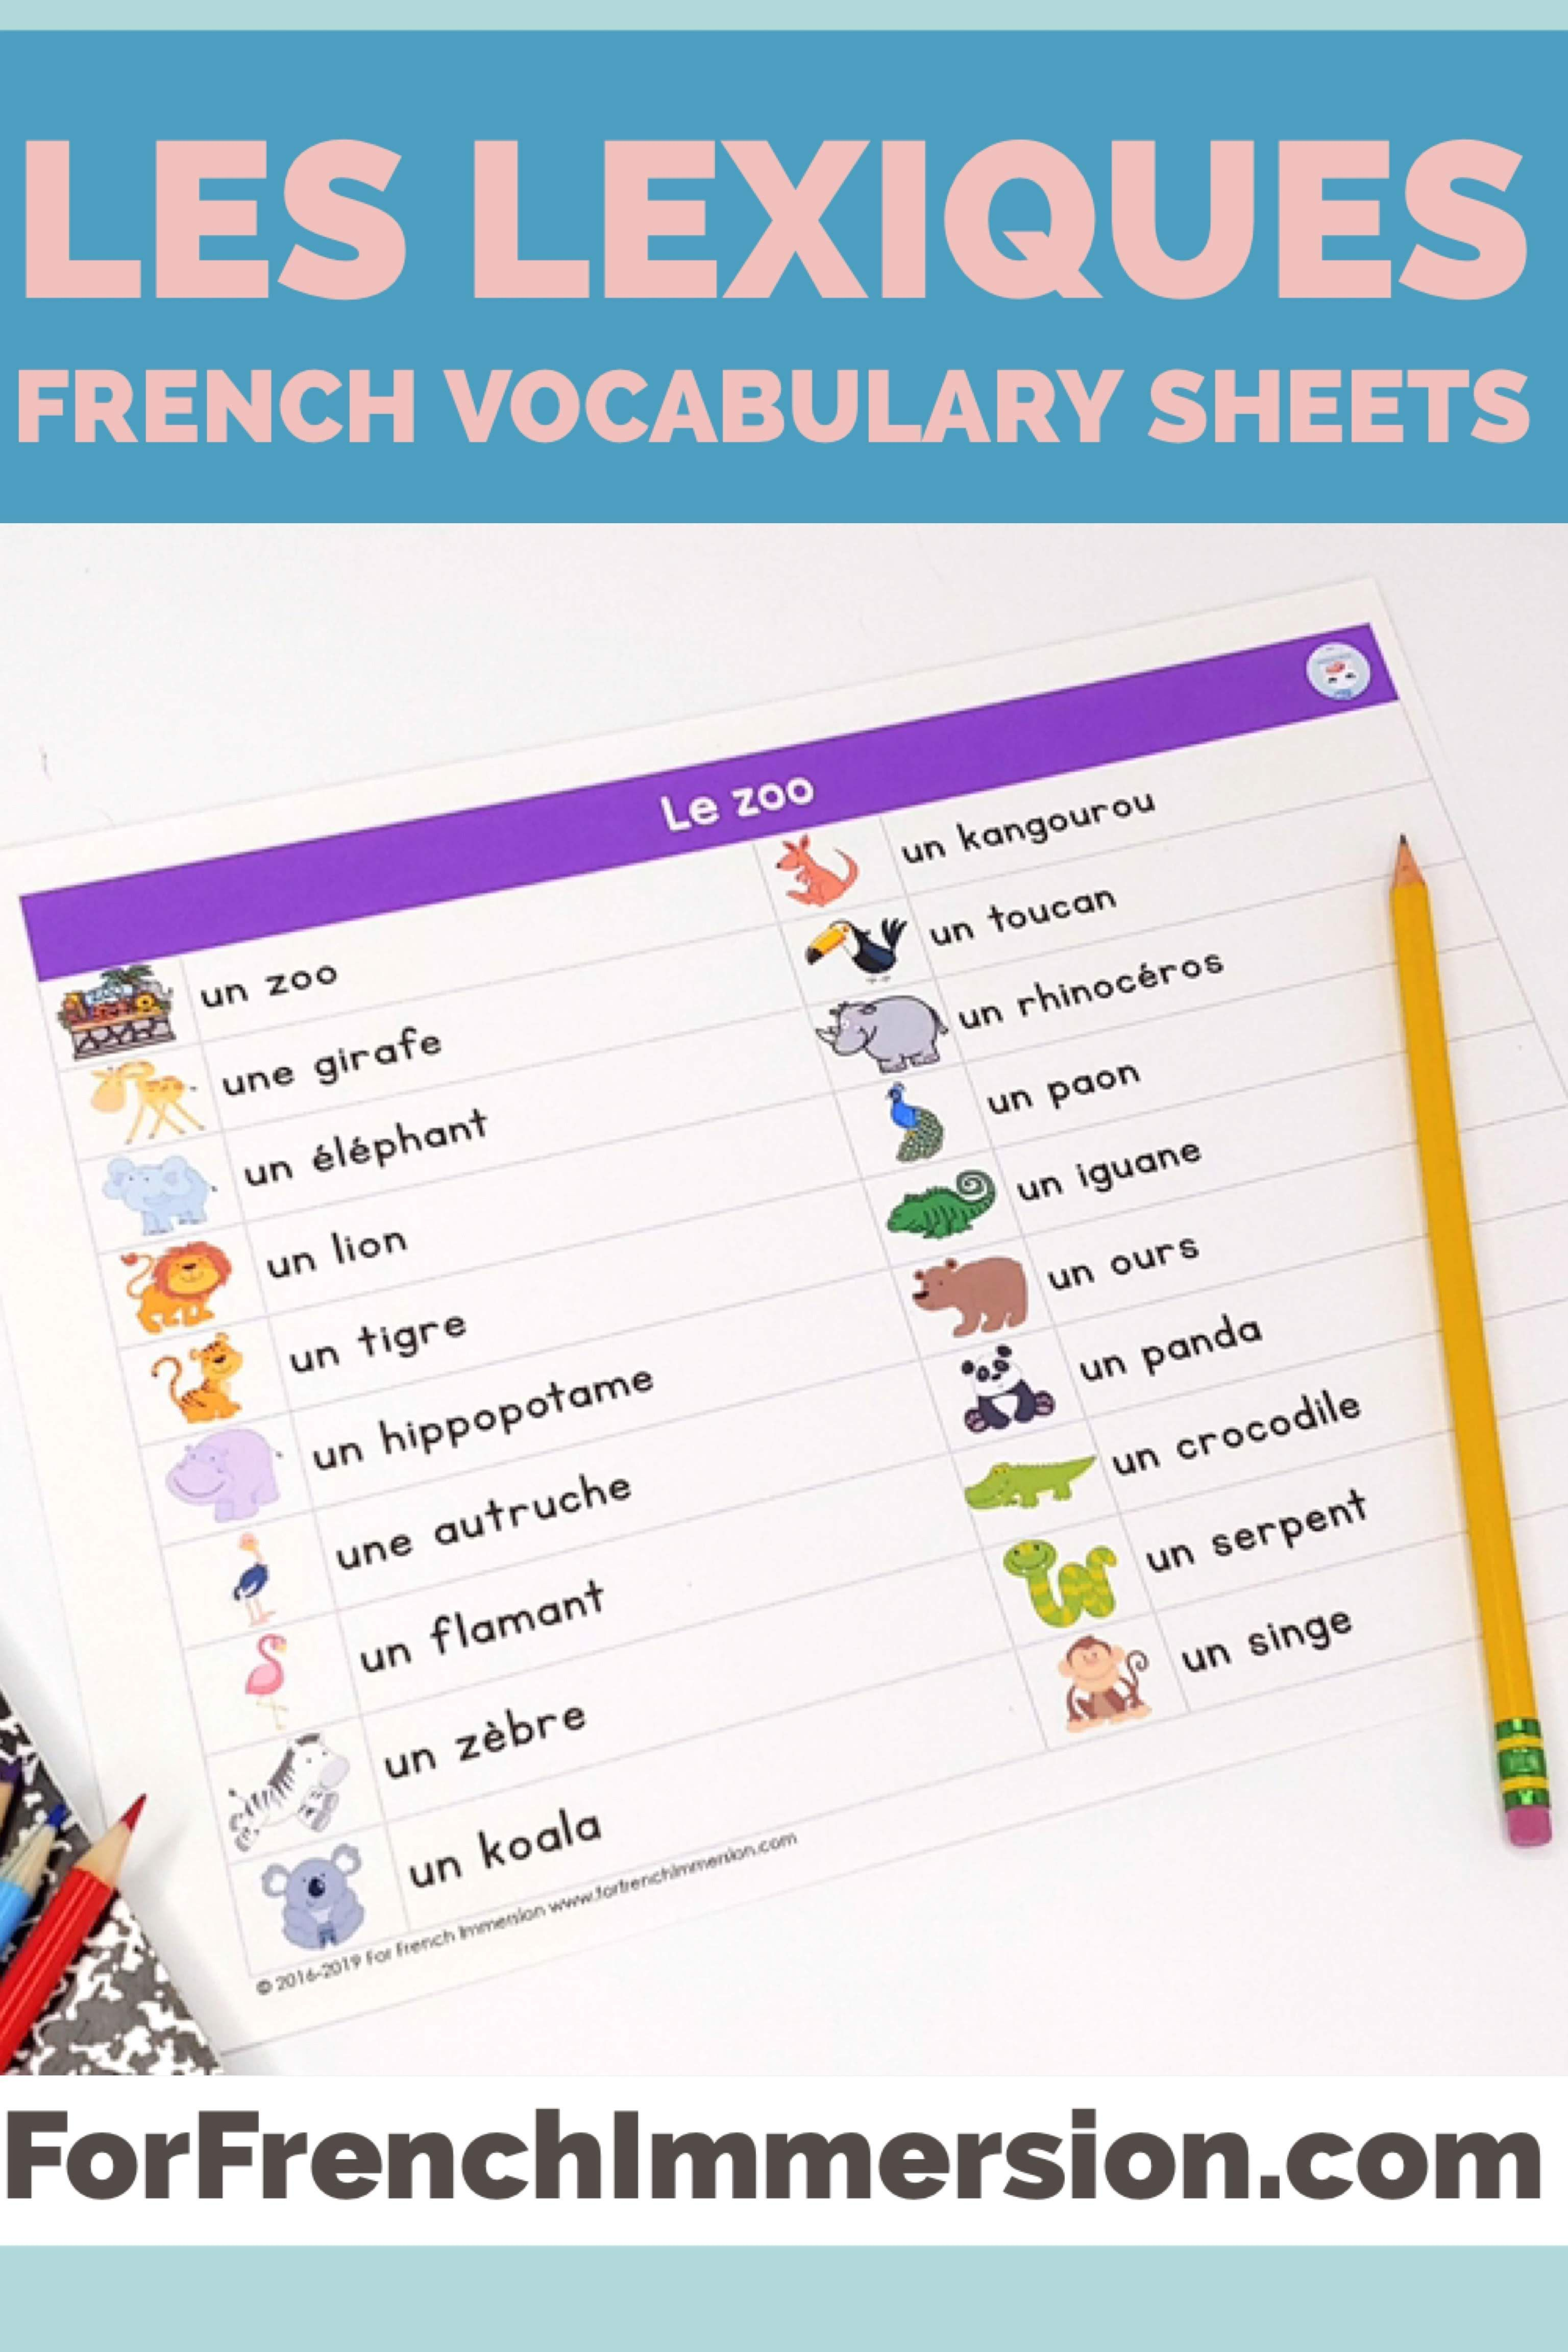 medium resolution of FREE French Vocabulary Sheets: des lexiques - For French Immersion   French  vocabulary